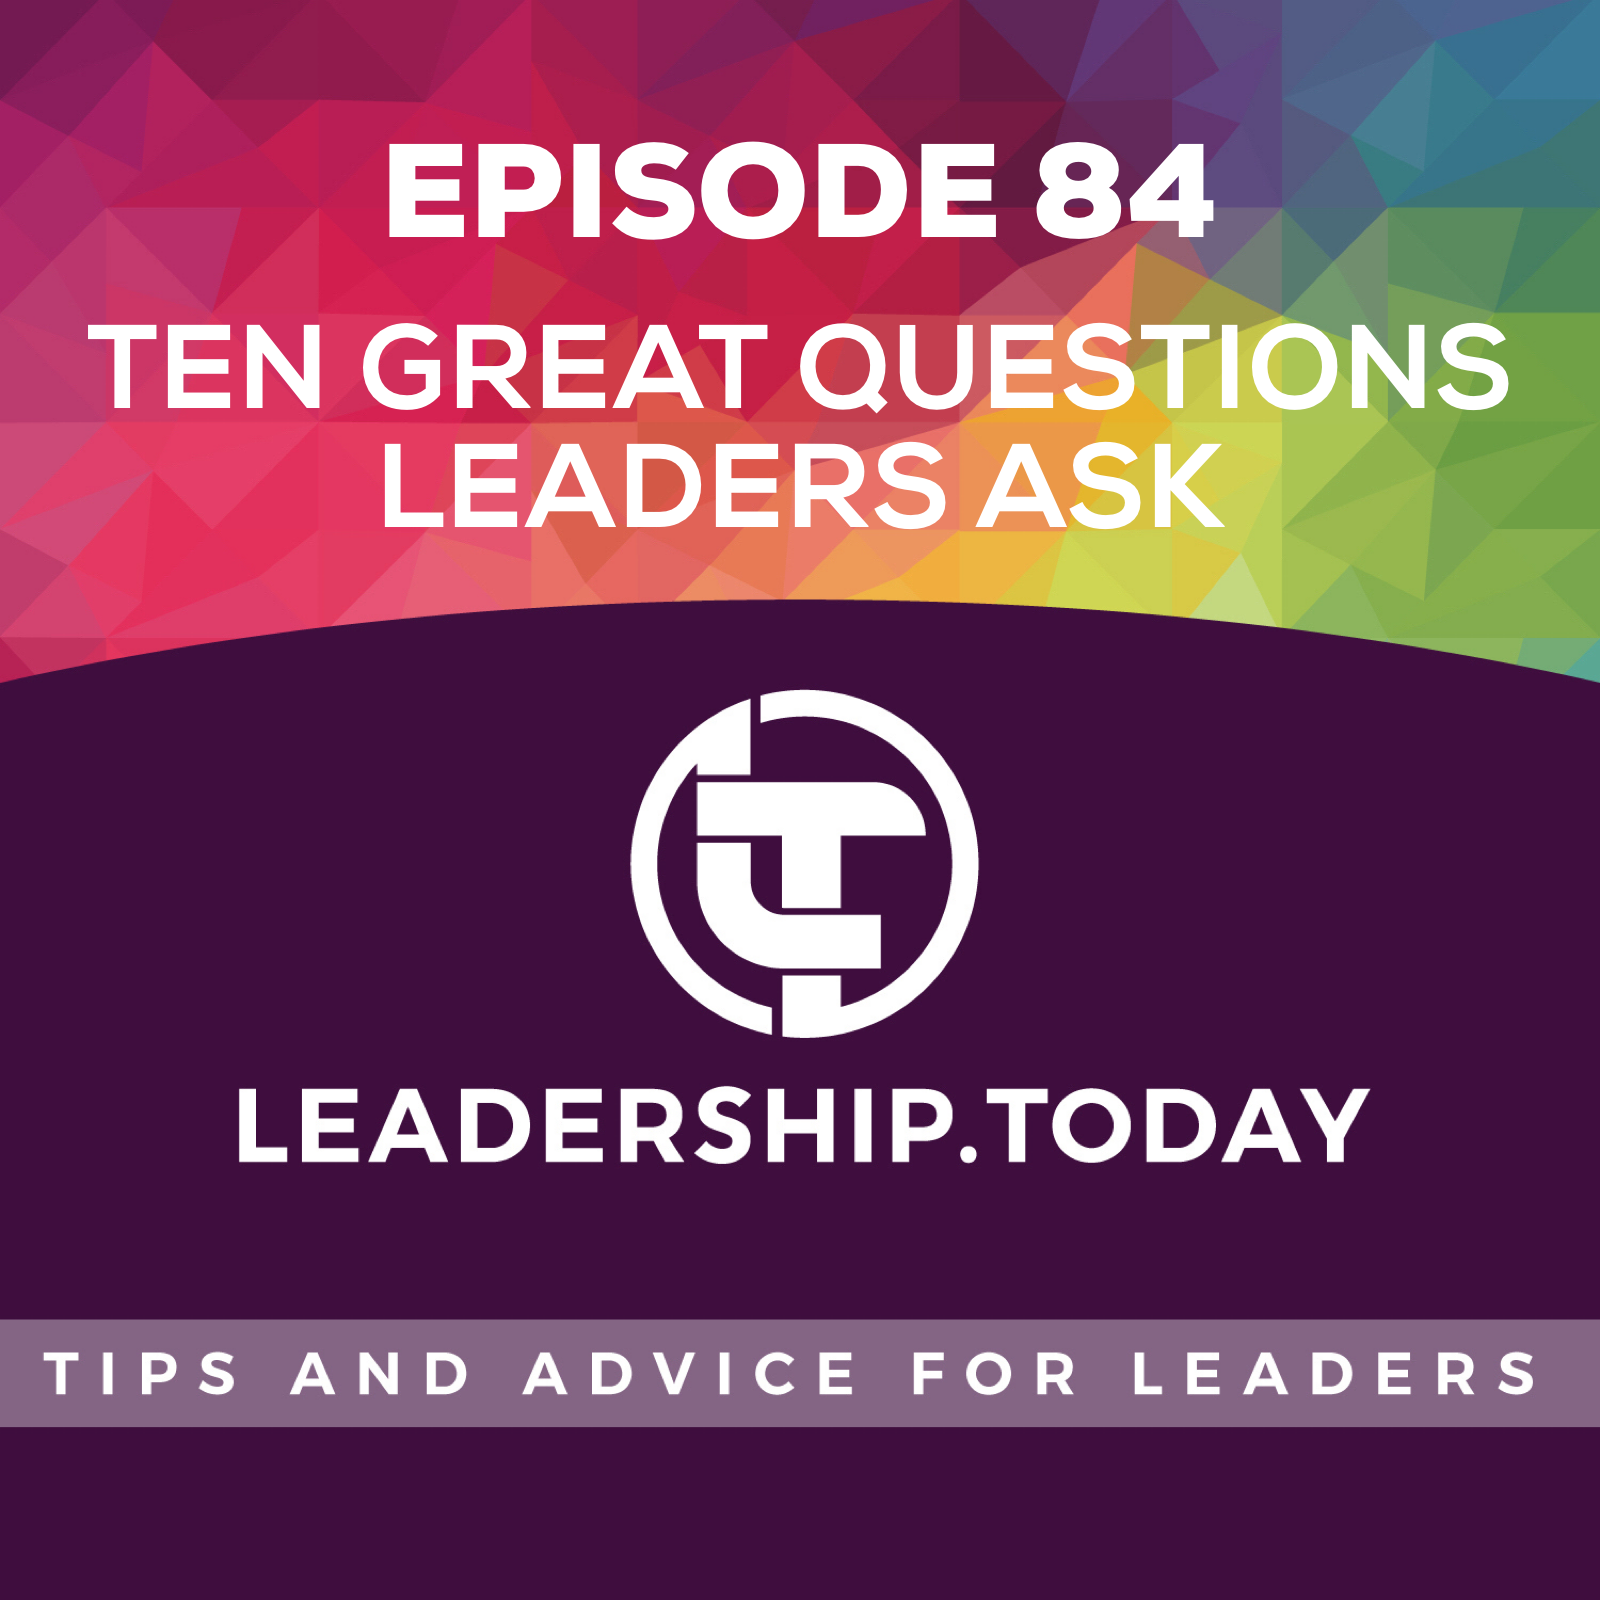 Episode 84 - Ten Great Questions Leaders Ask